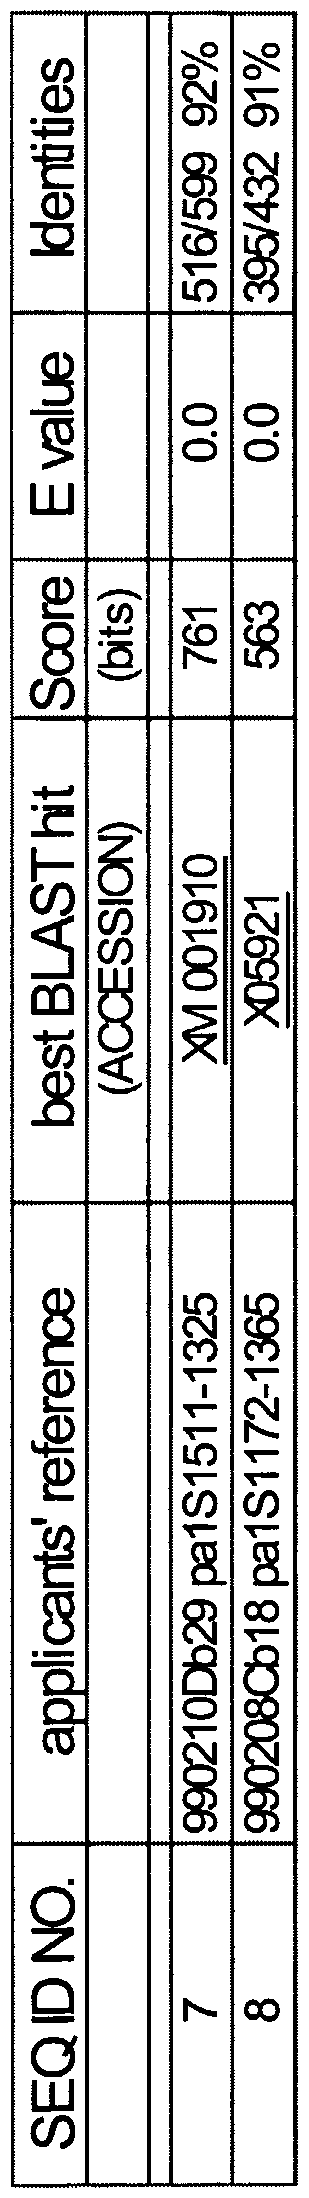 WO2002063000A9 - Purified and isolated platelet calcium